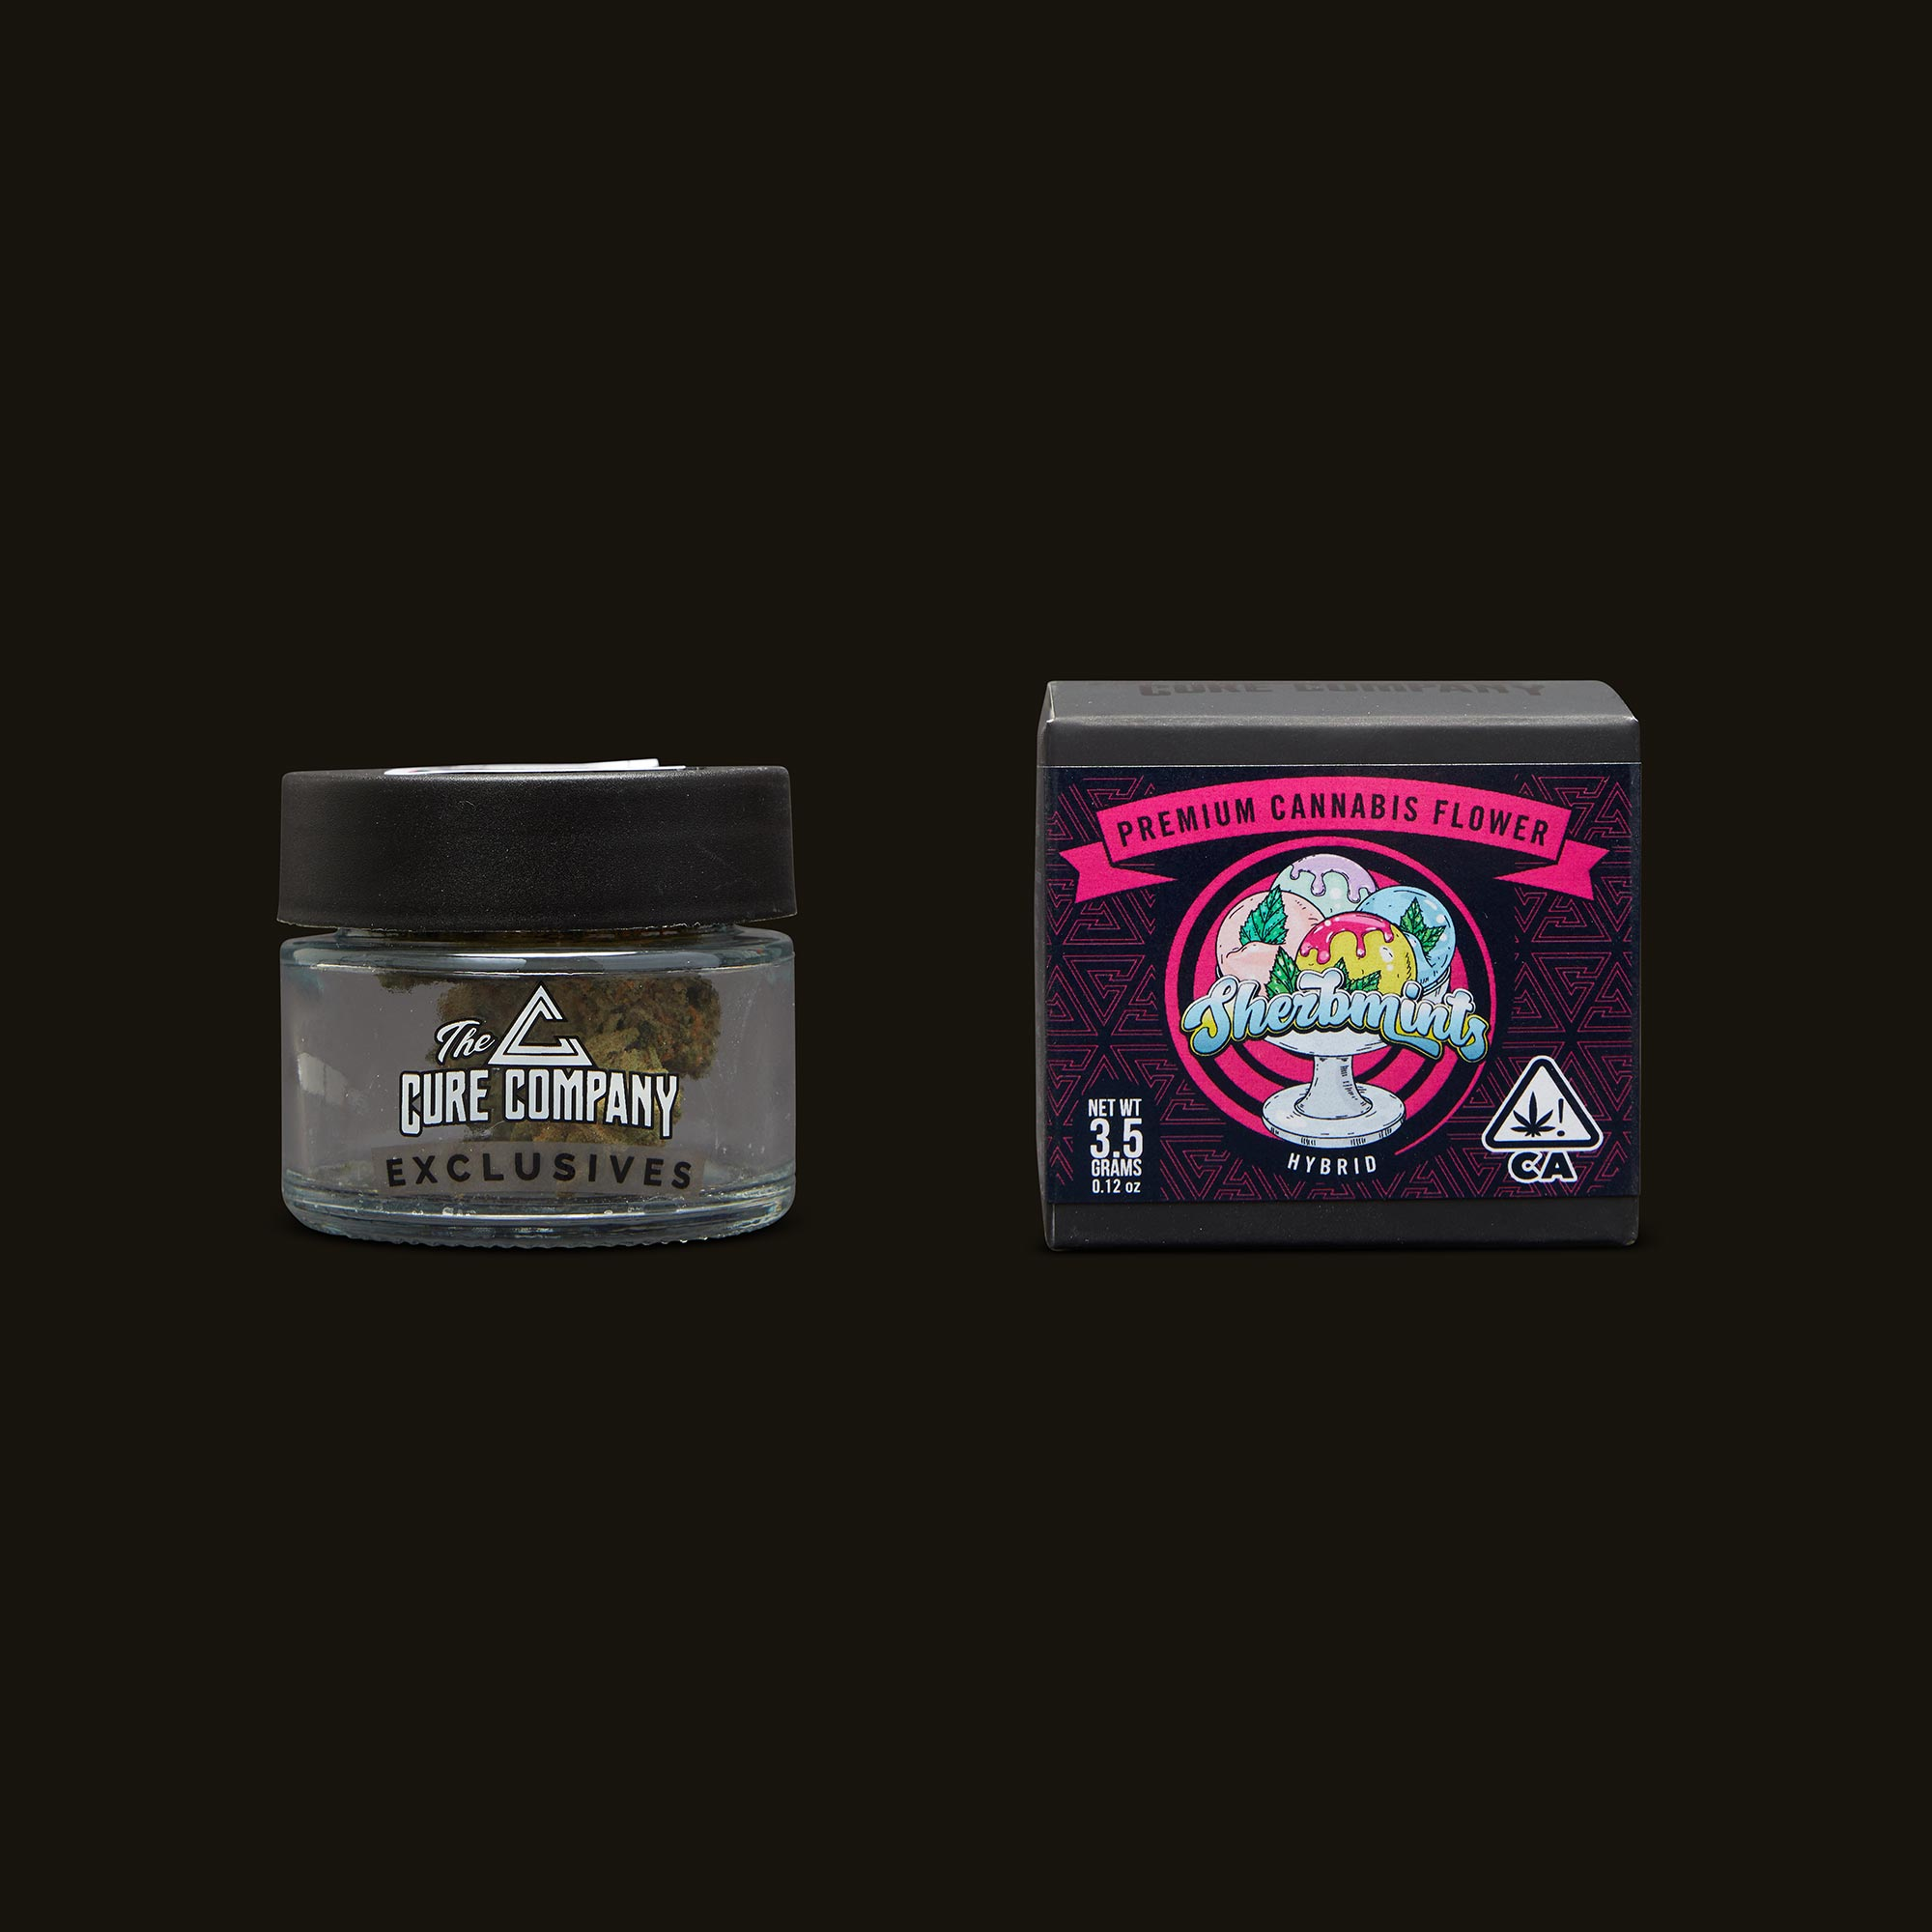 The Cure Company Sherbmints Jar and Packaging